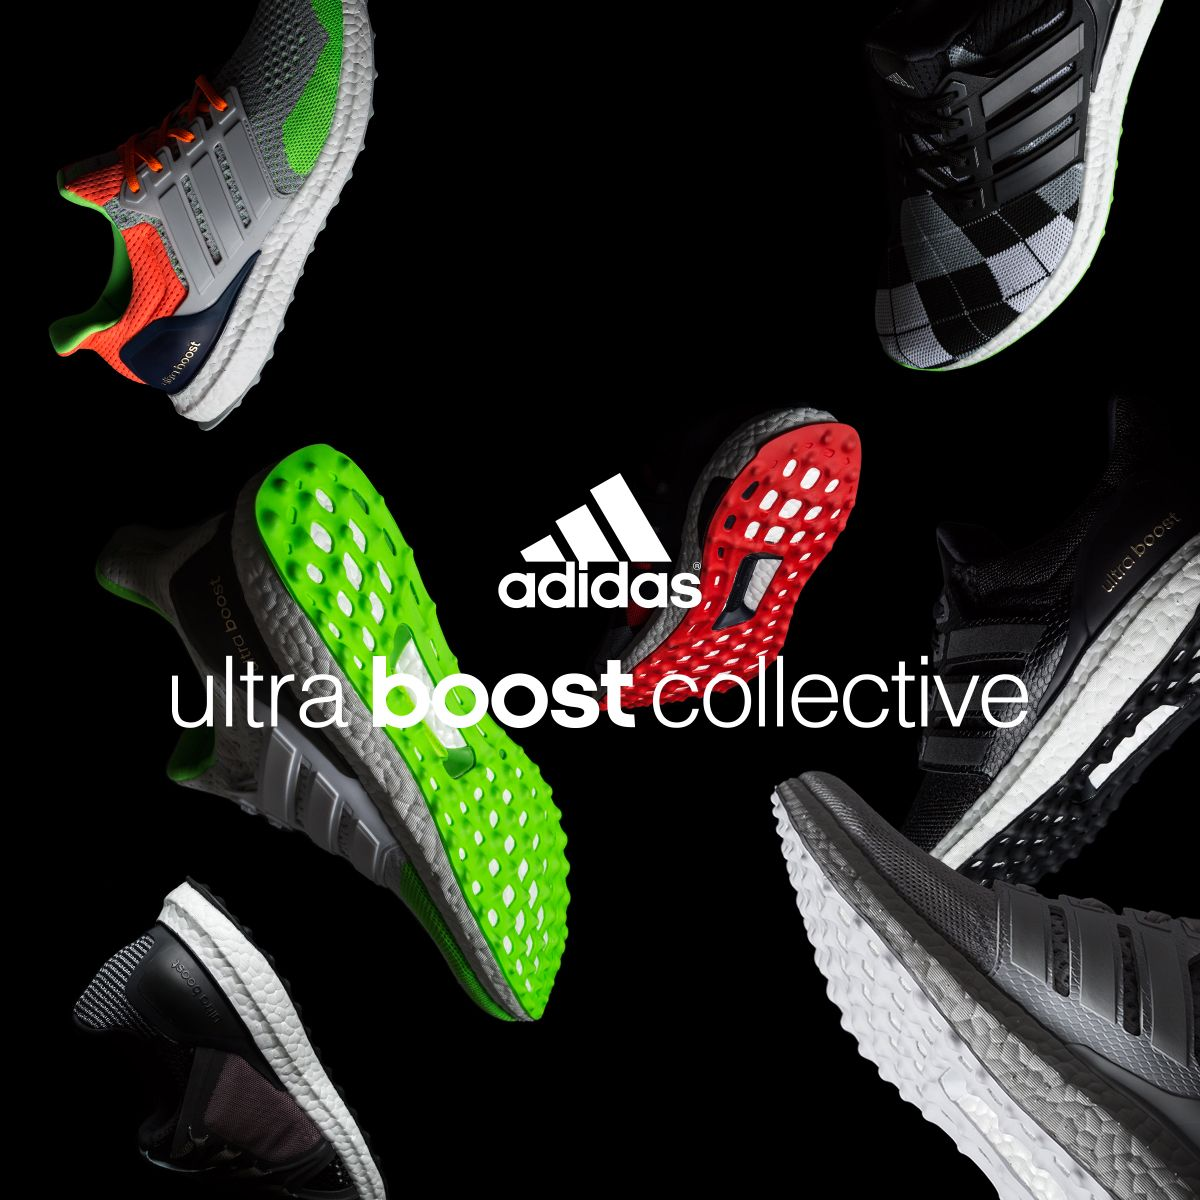 UltraBoost Collective